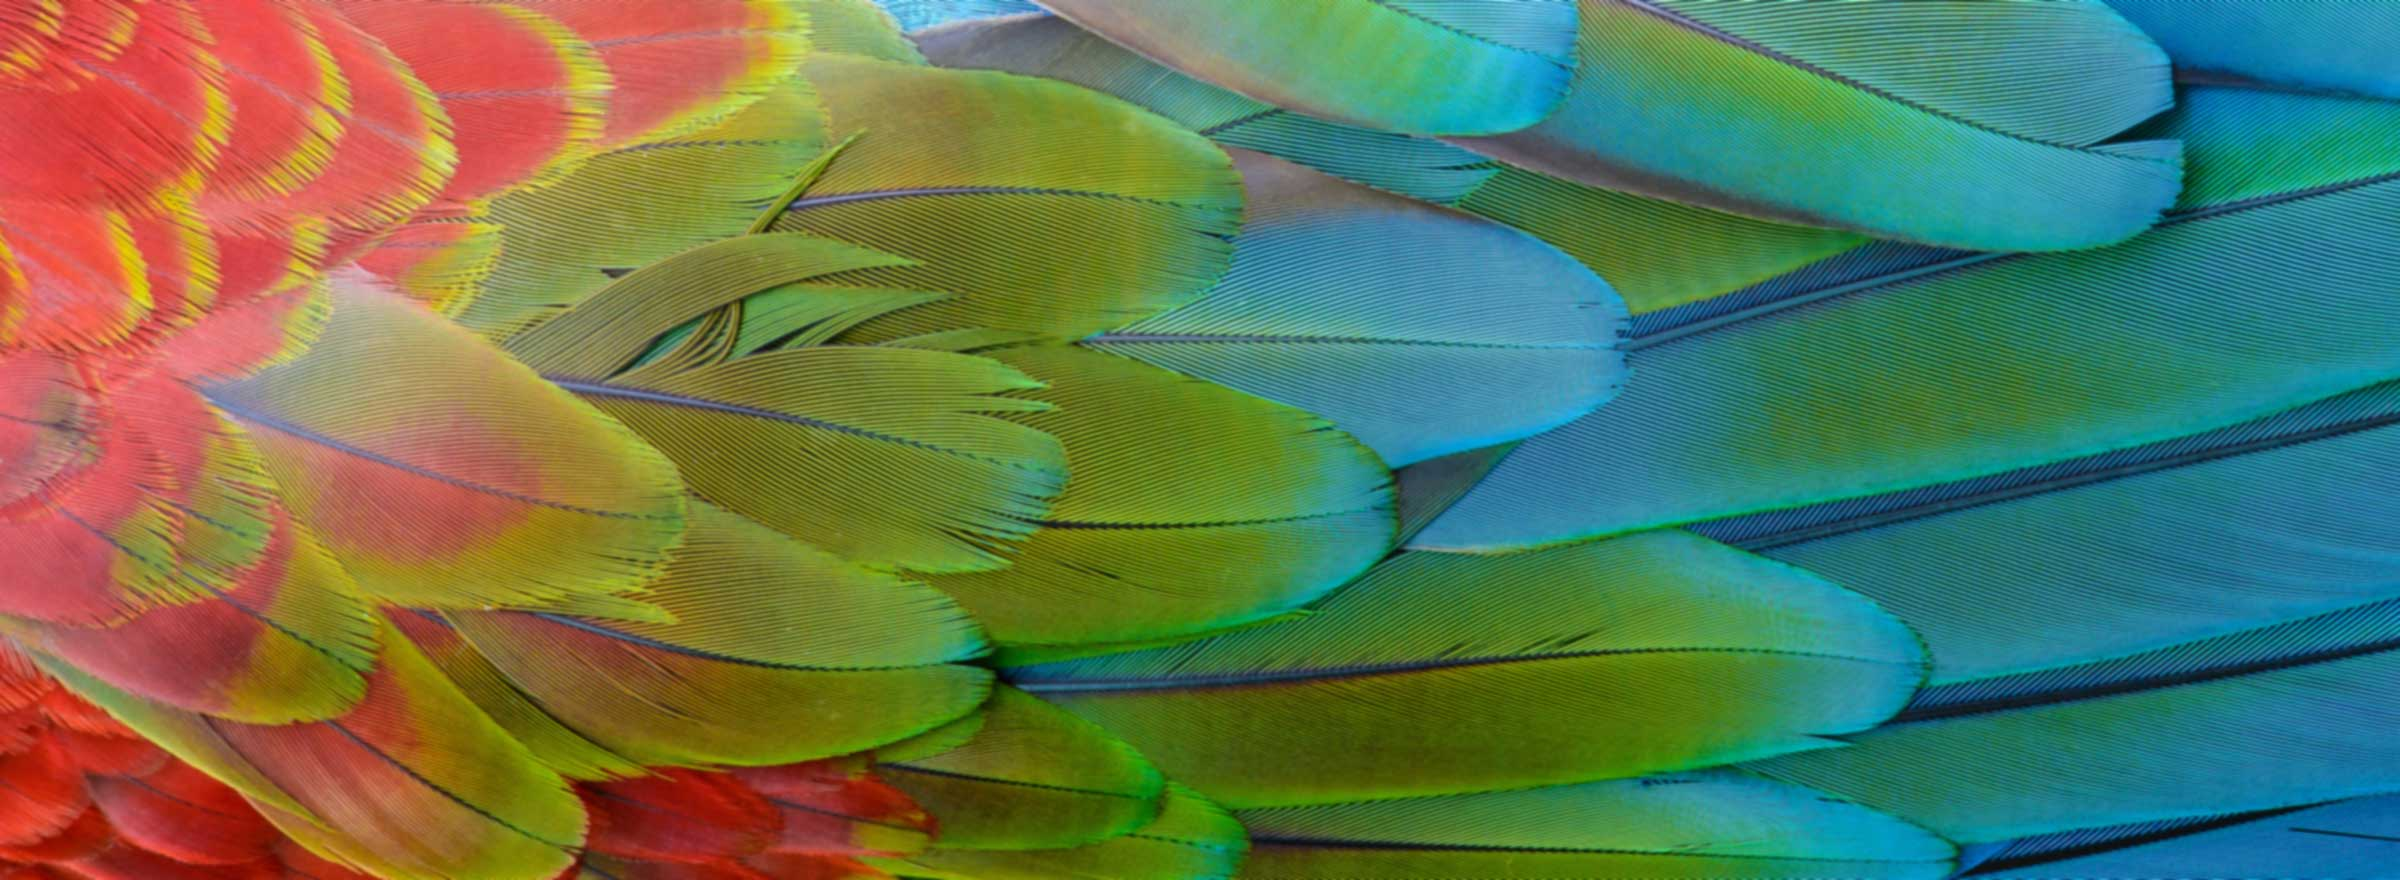 a close-up of a beautiful, multi-colored bird wing